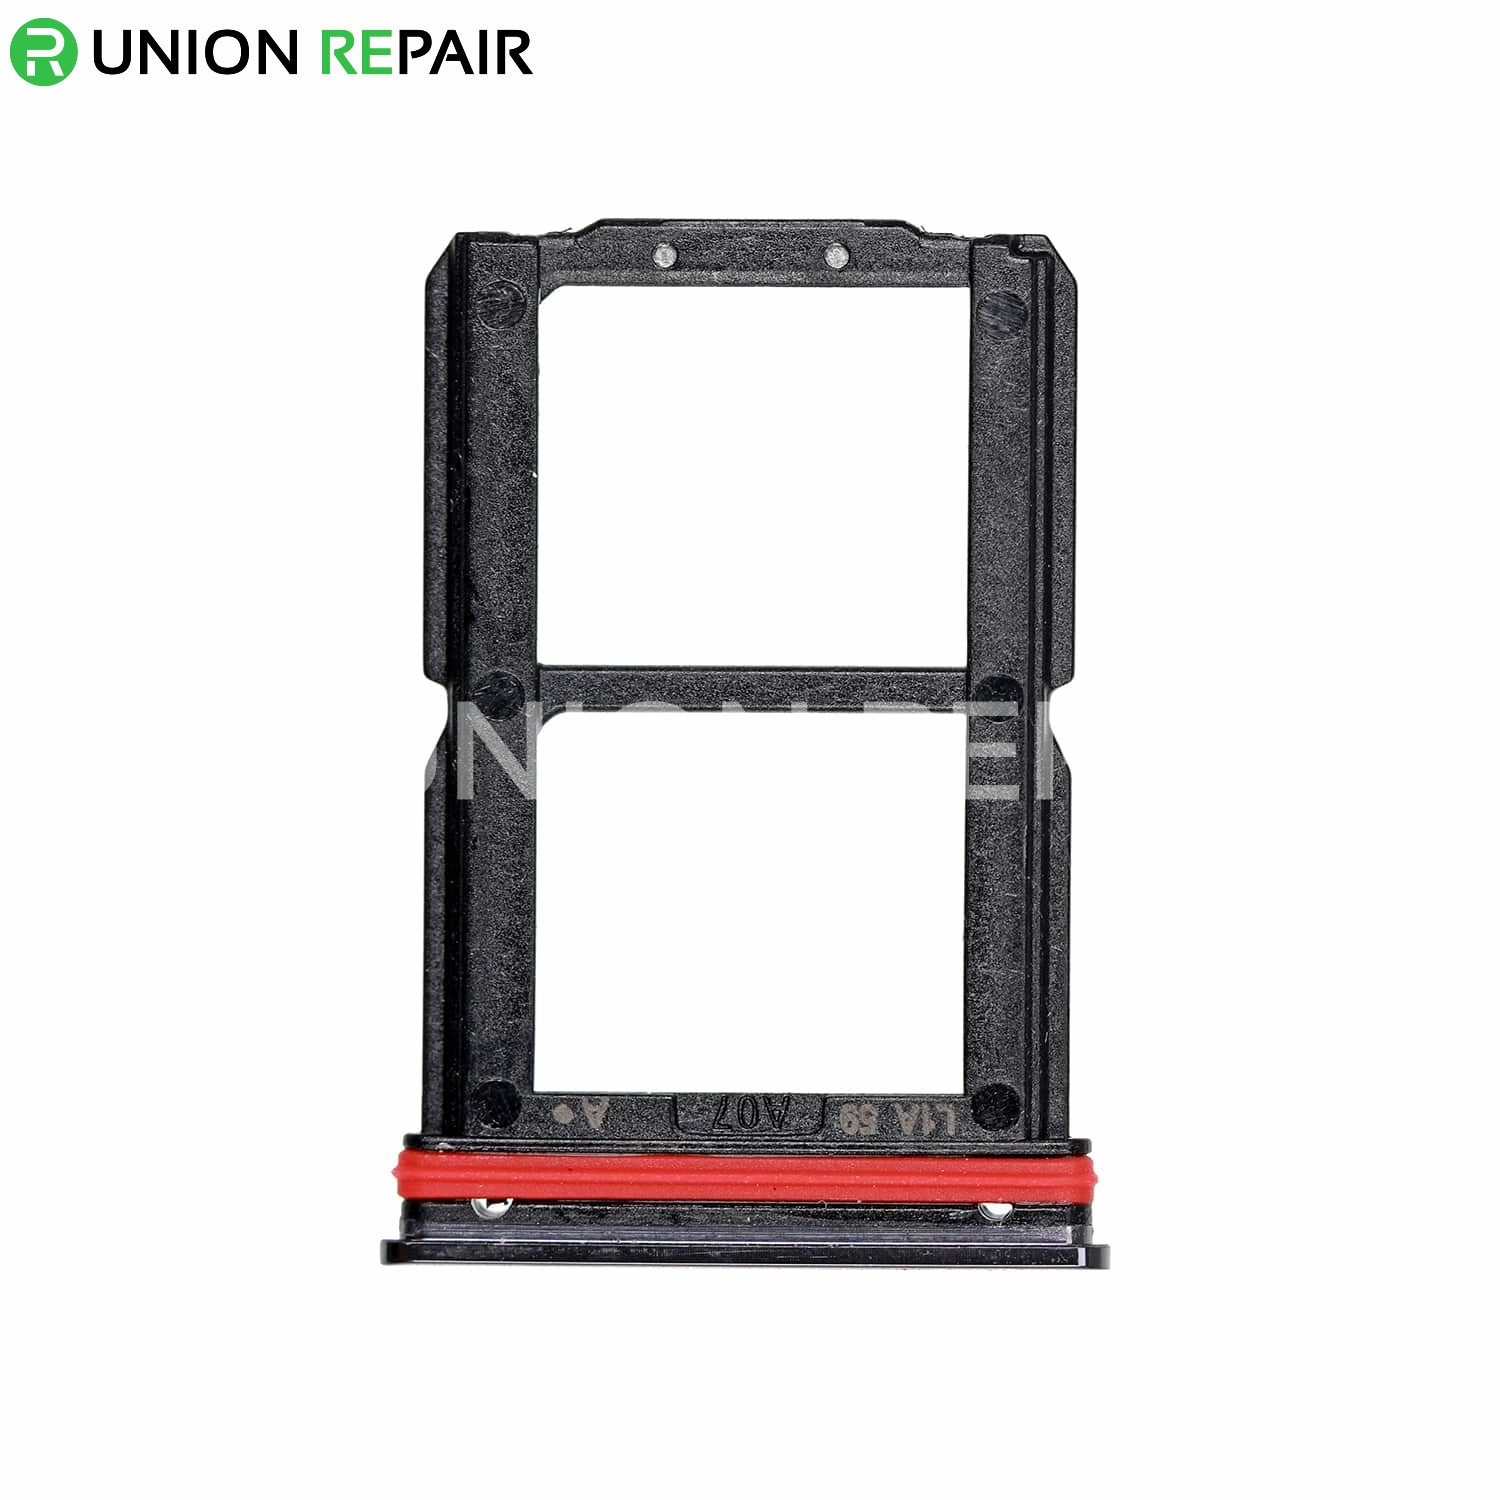 Replacement for OnePlus 7 SIM Card Tray - Black